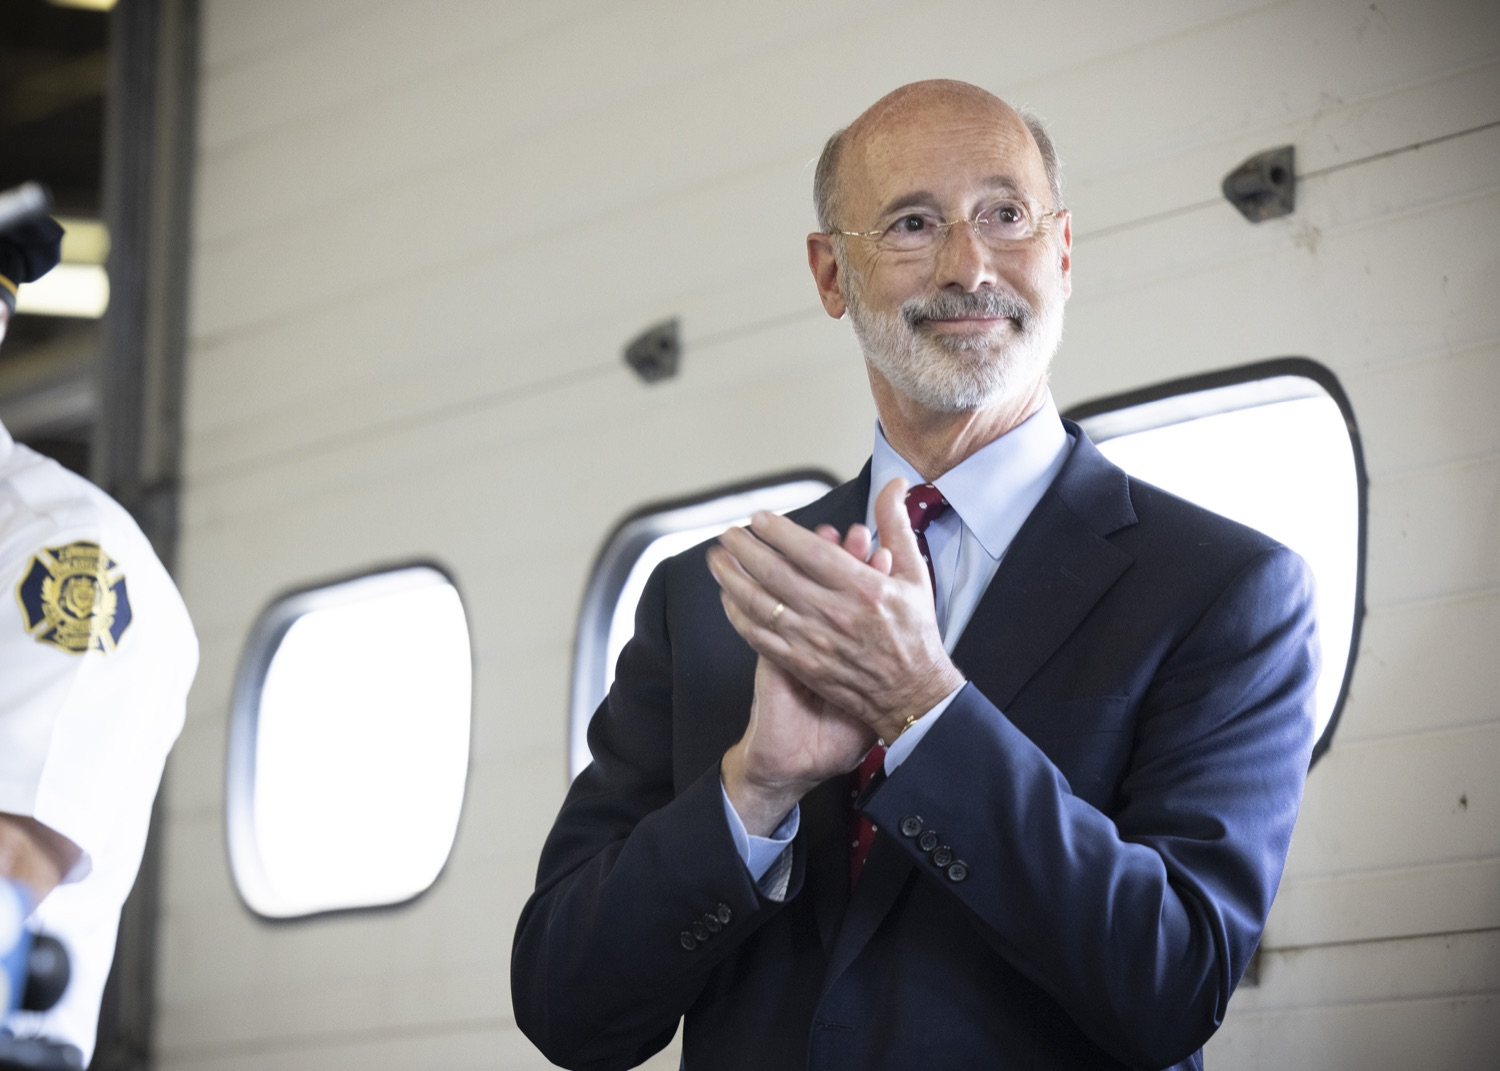 """<a href=""""https://filesource.wostreaming.net/commonwealthofpa/photo/18936_gov_taskforceone_dz_011.jpg"""" target=""""_blank"""">⇣Download Photo<br></a>Governor Tom Wolf thanked members of Pennsylvania-Task Force 1 (PA- TF1), who returned today to Philadelphia after spending two weeks assisting with search and rescue efforts at the site of the recent deadly building collapse in Surfside, Florida.  Philadelphia, Pa.  July 16, 2021"""